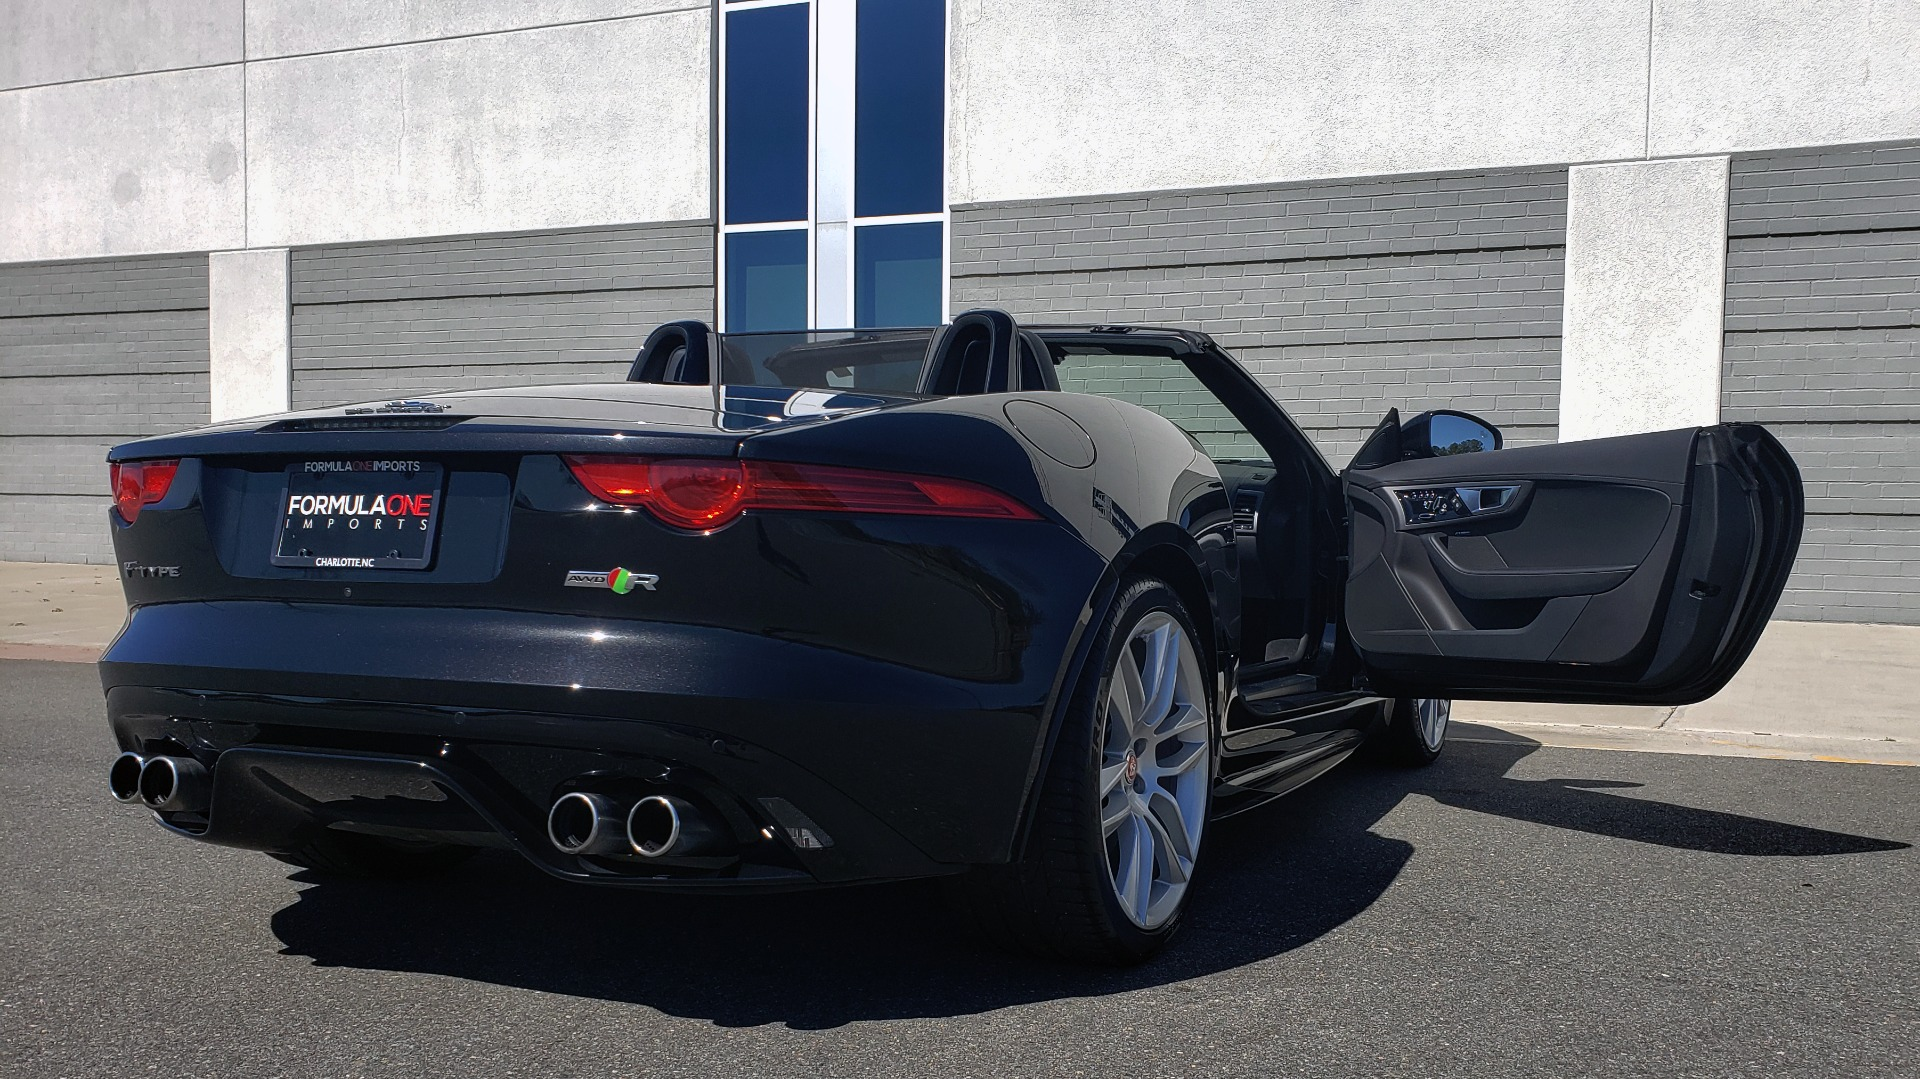 Used 2016 Jaguar F-TYPE R CONVERTIBLE / SC 5.0L 550HP / VISION PACK 3 / BSM / REARVIEW for sale $63,000 at Formula Imports in Charlotte NC 28227 78